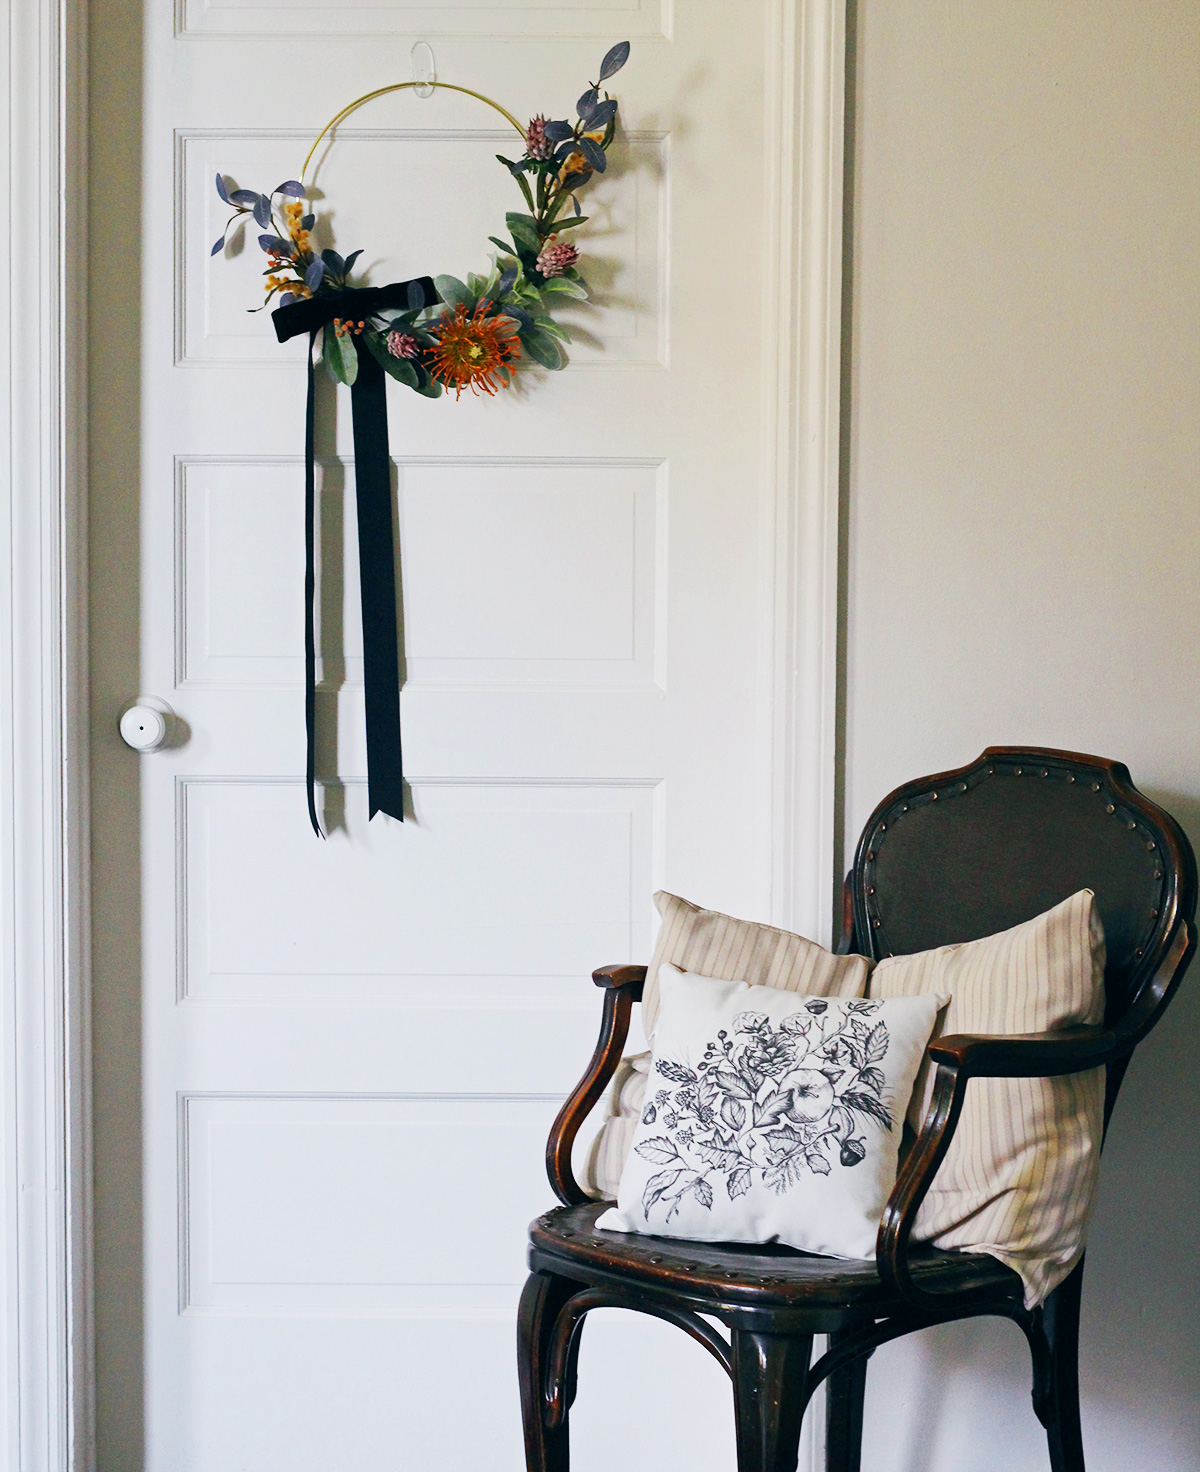 Display a wreath on an interior door